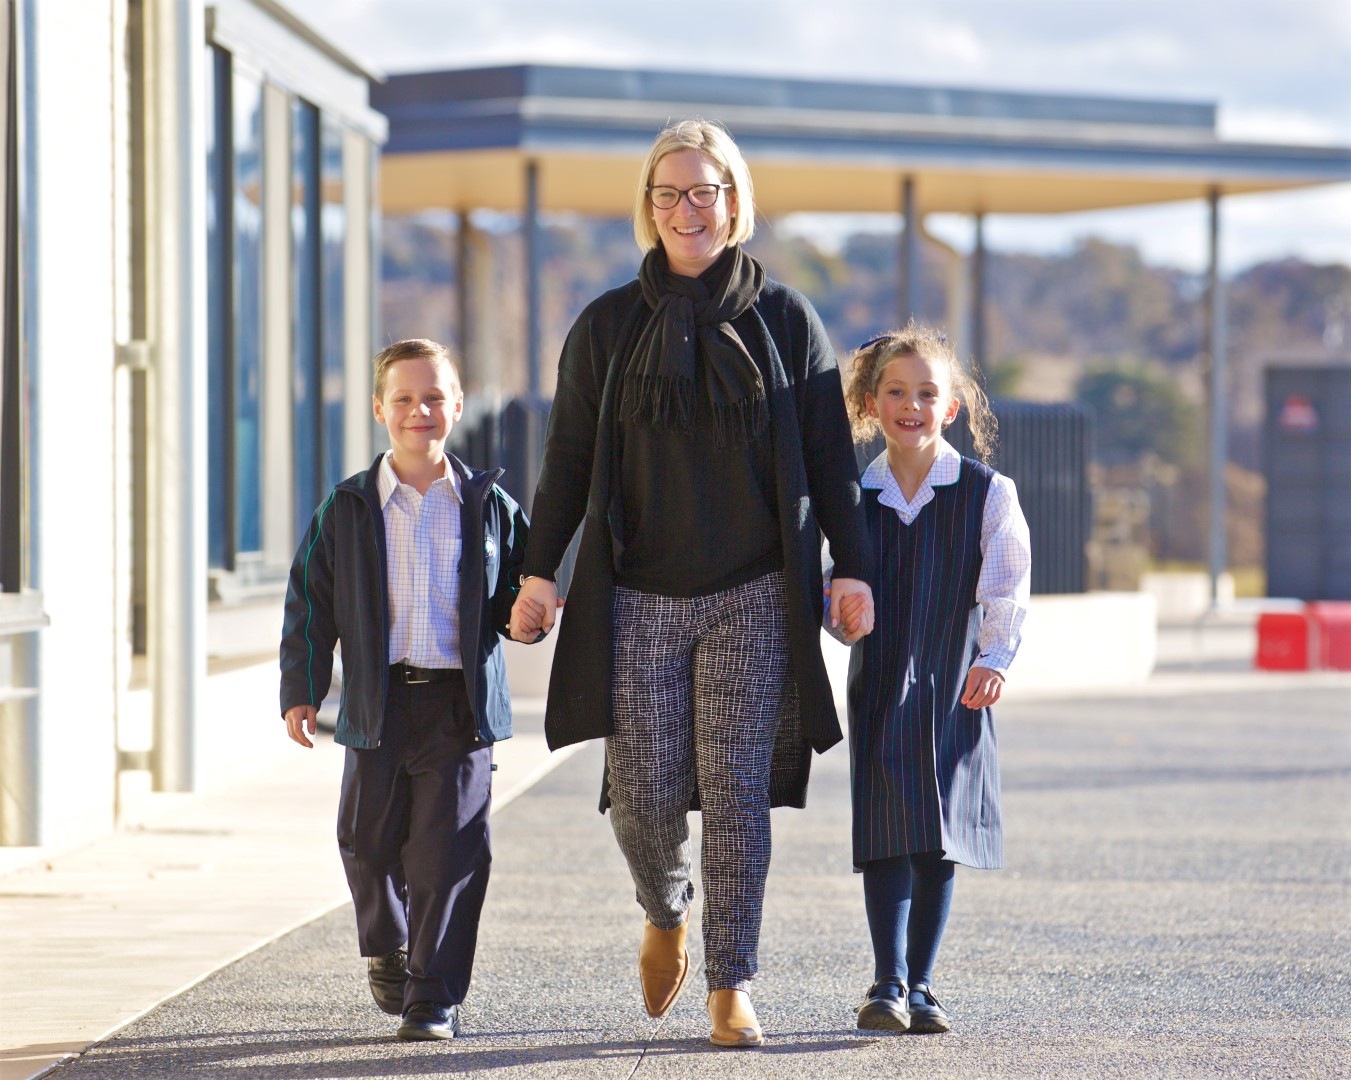 Growing school, new uniform – 2018 here we come!